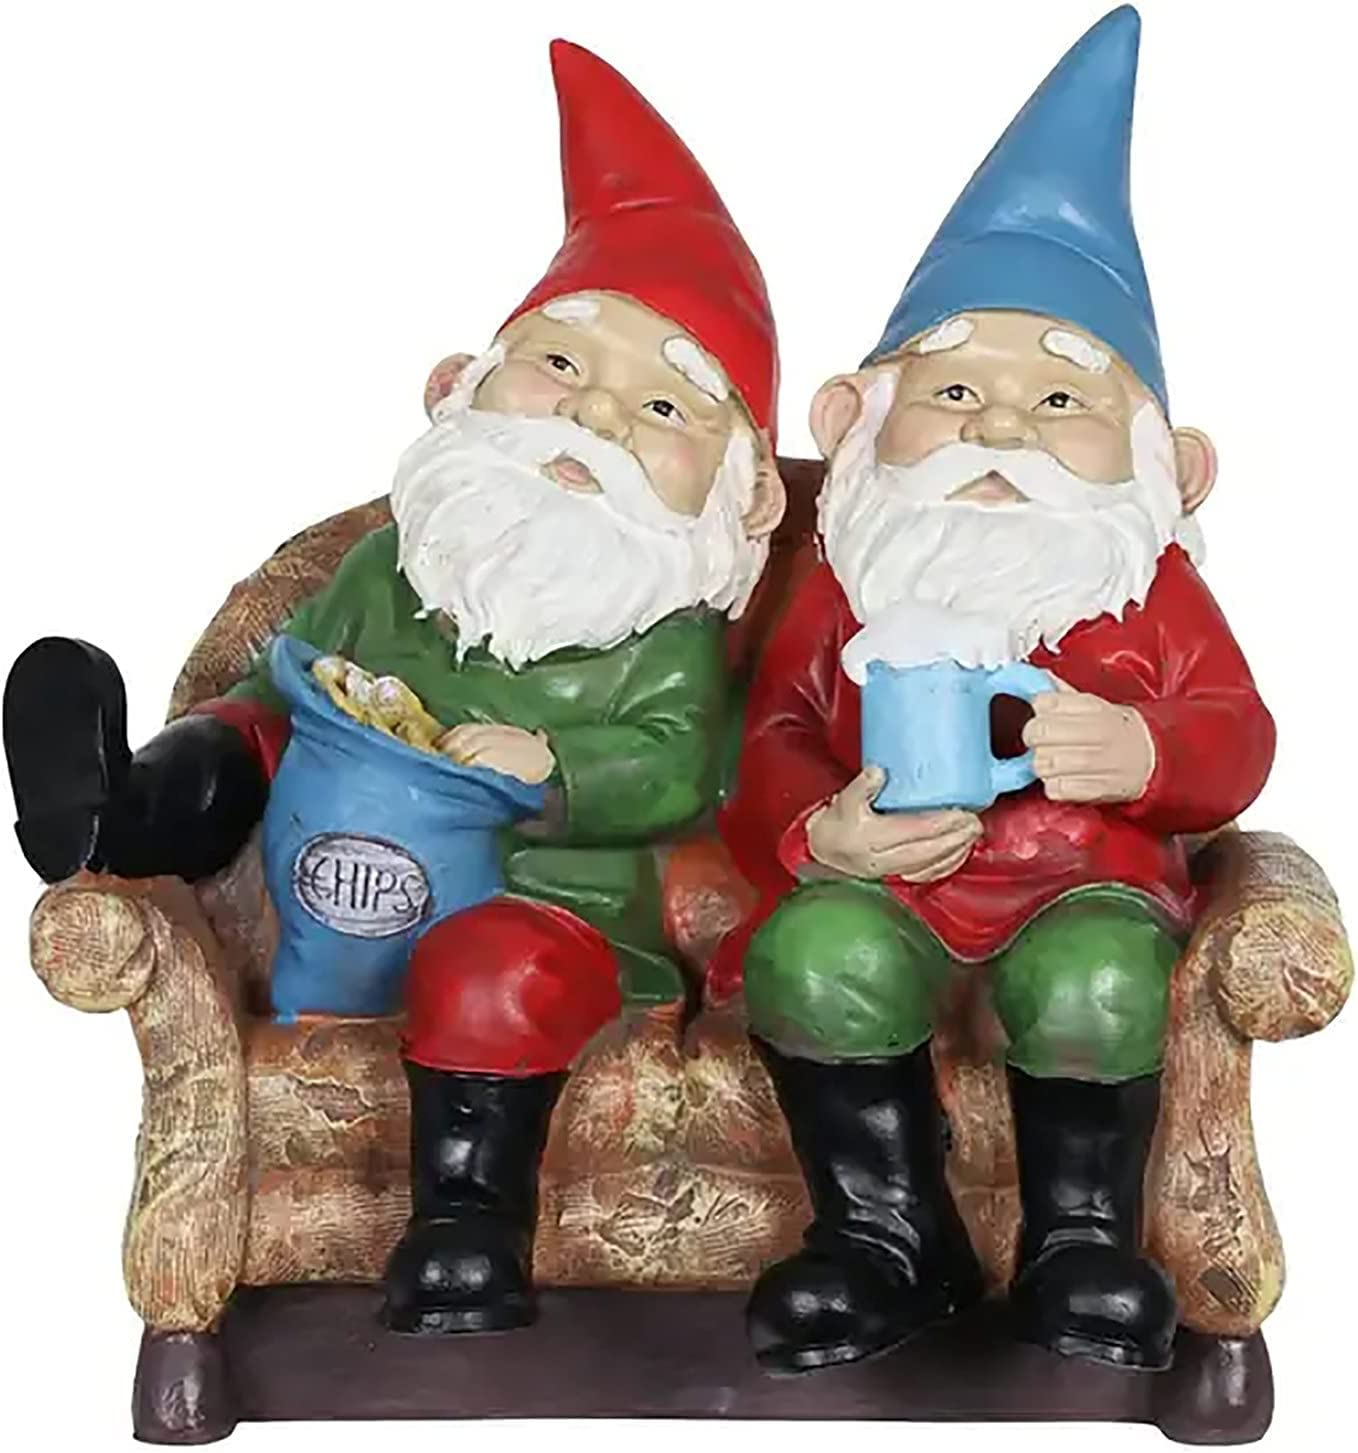 BITM Drunk Max 83% OFF Fashionable Beer Garden Gnome Good Time Gnomes Couch Potato Lazy